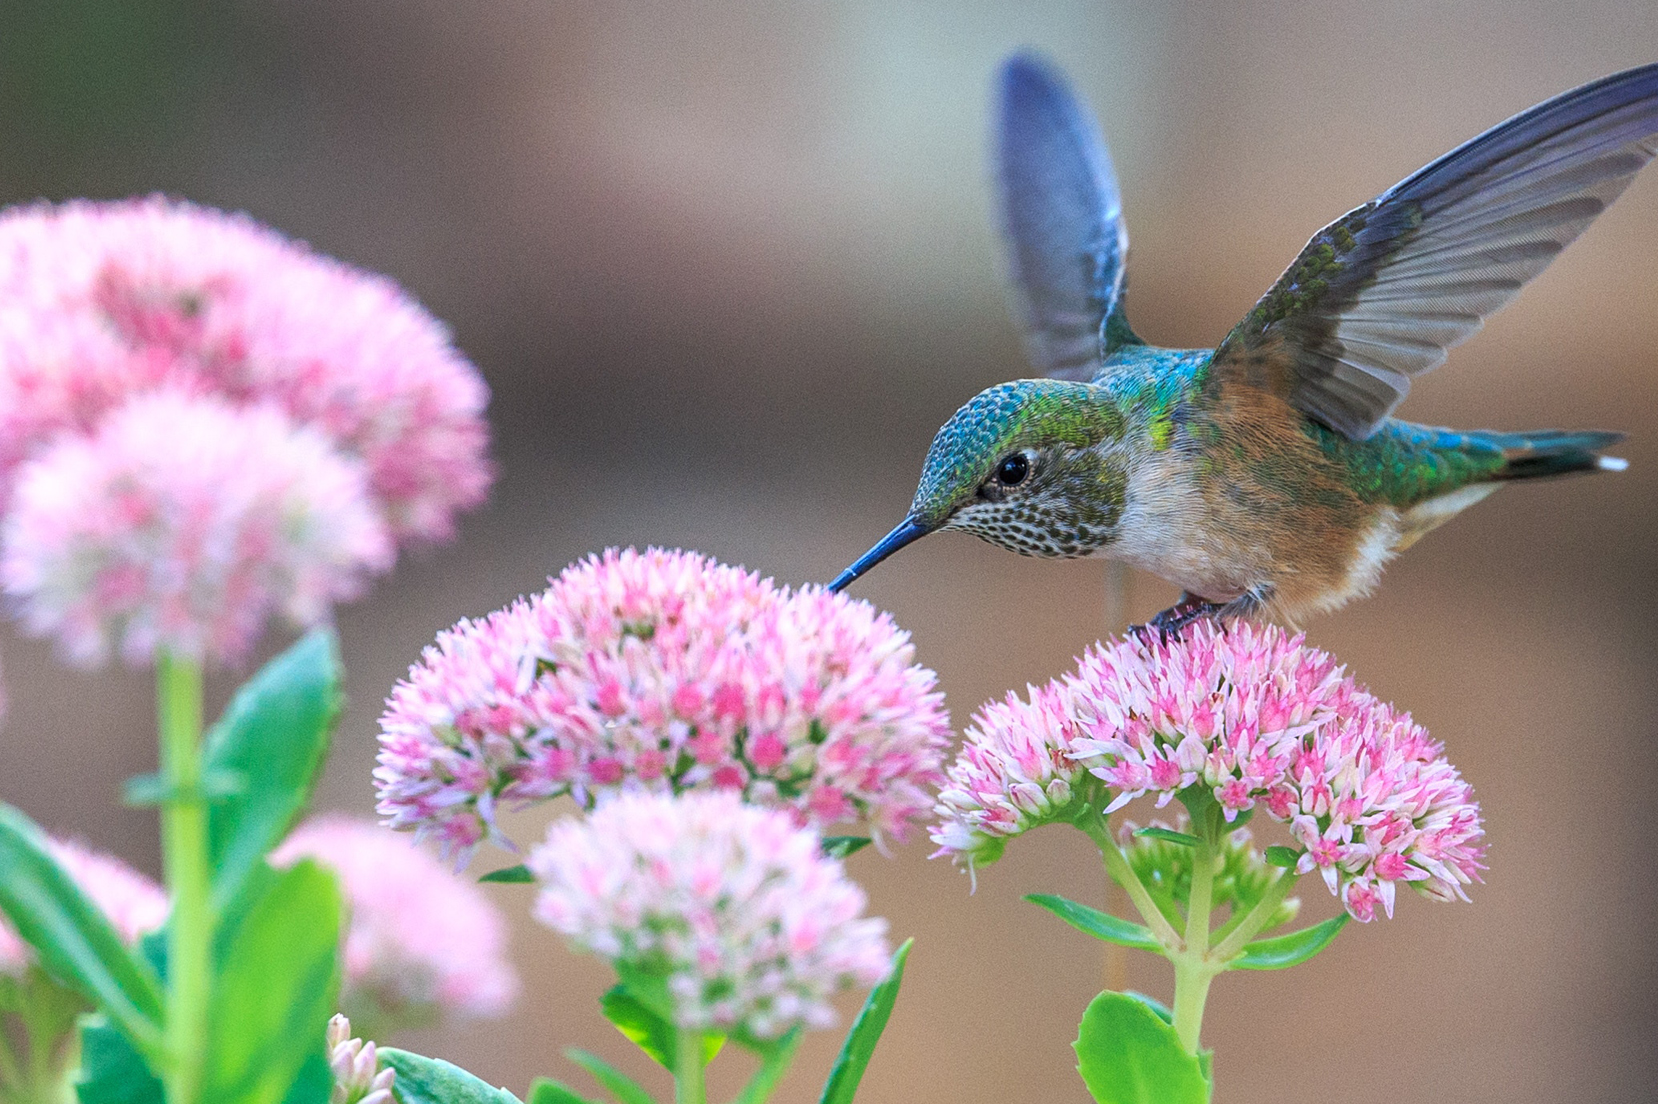 little bird on the flowers